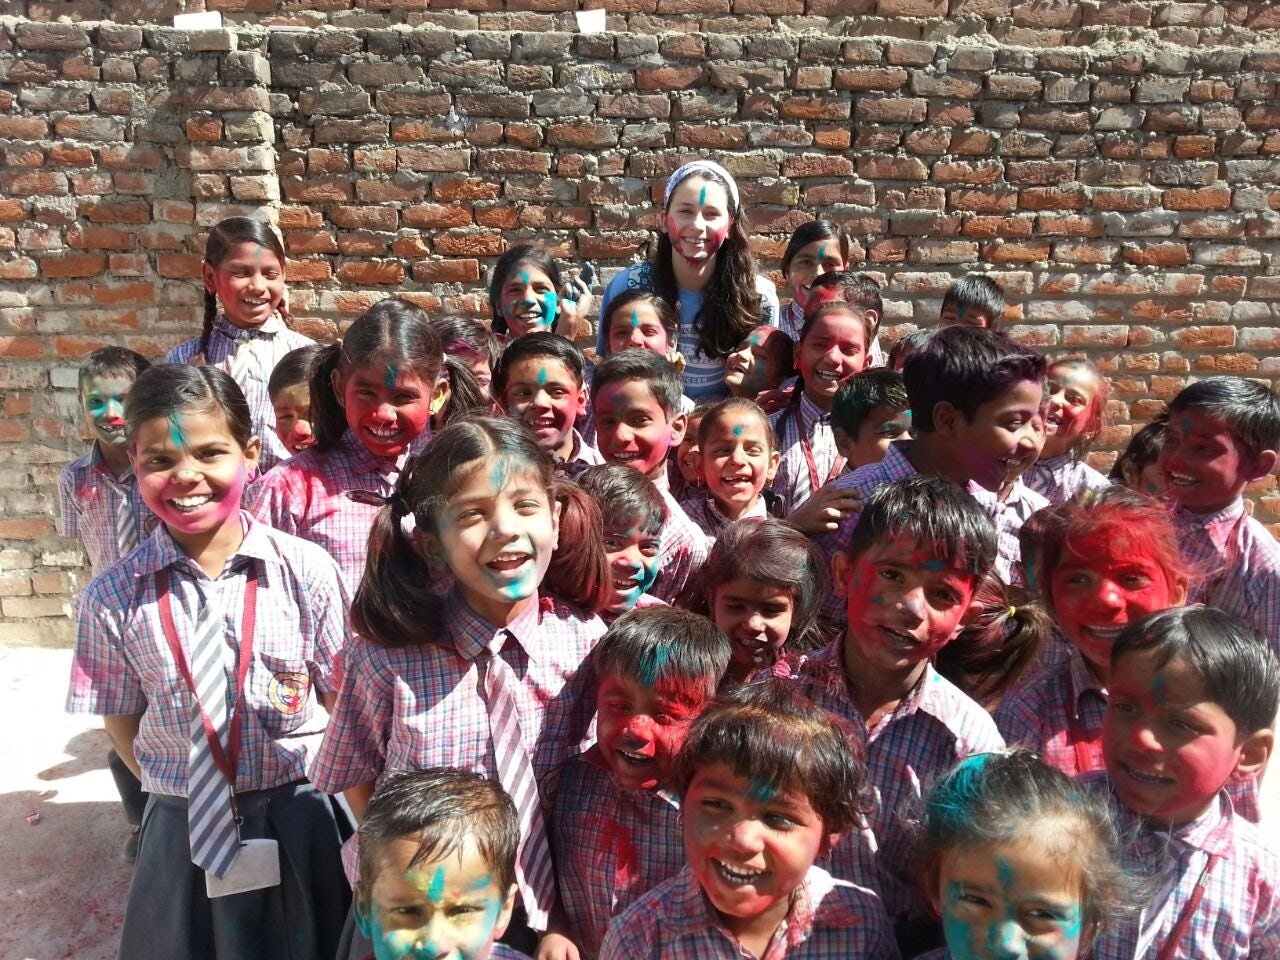 Volunteer in India - Where Should I Choose?